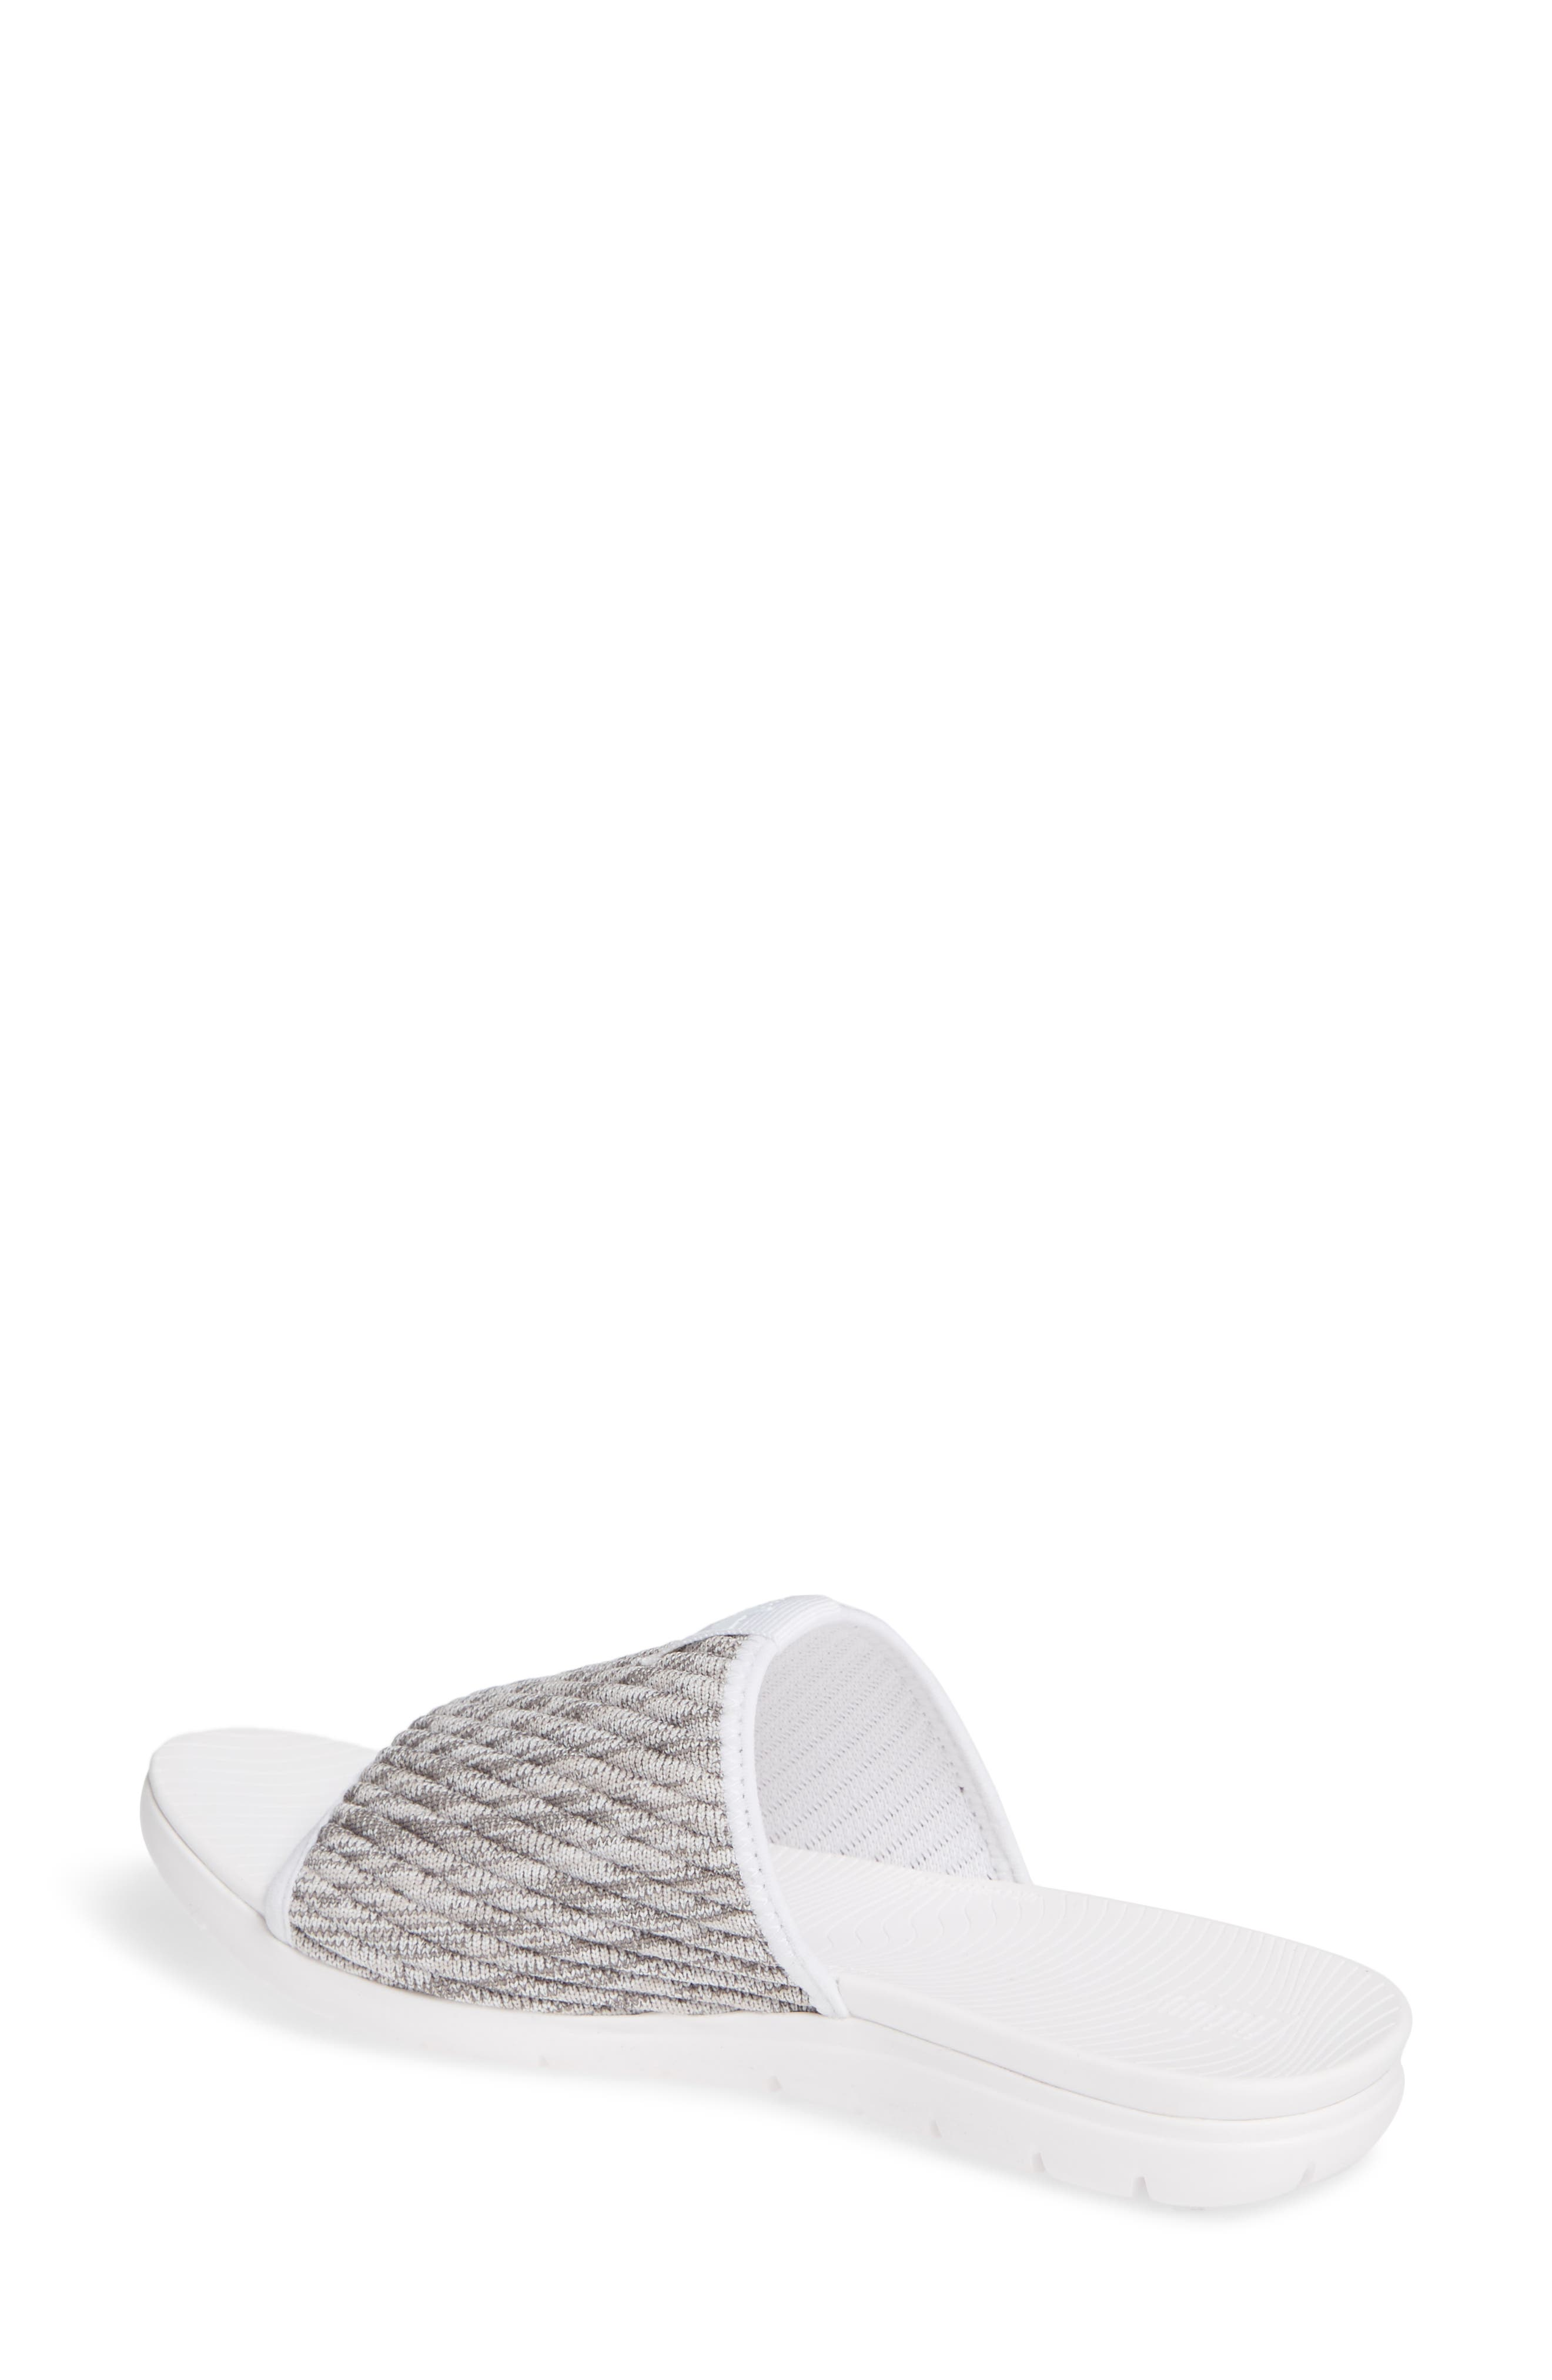 FITFLOP, Artknit Slide Sandal, Alternate thumbnail 2, color, URBAN WHITE MIX FABRIC